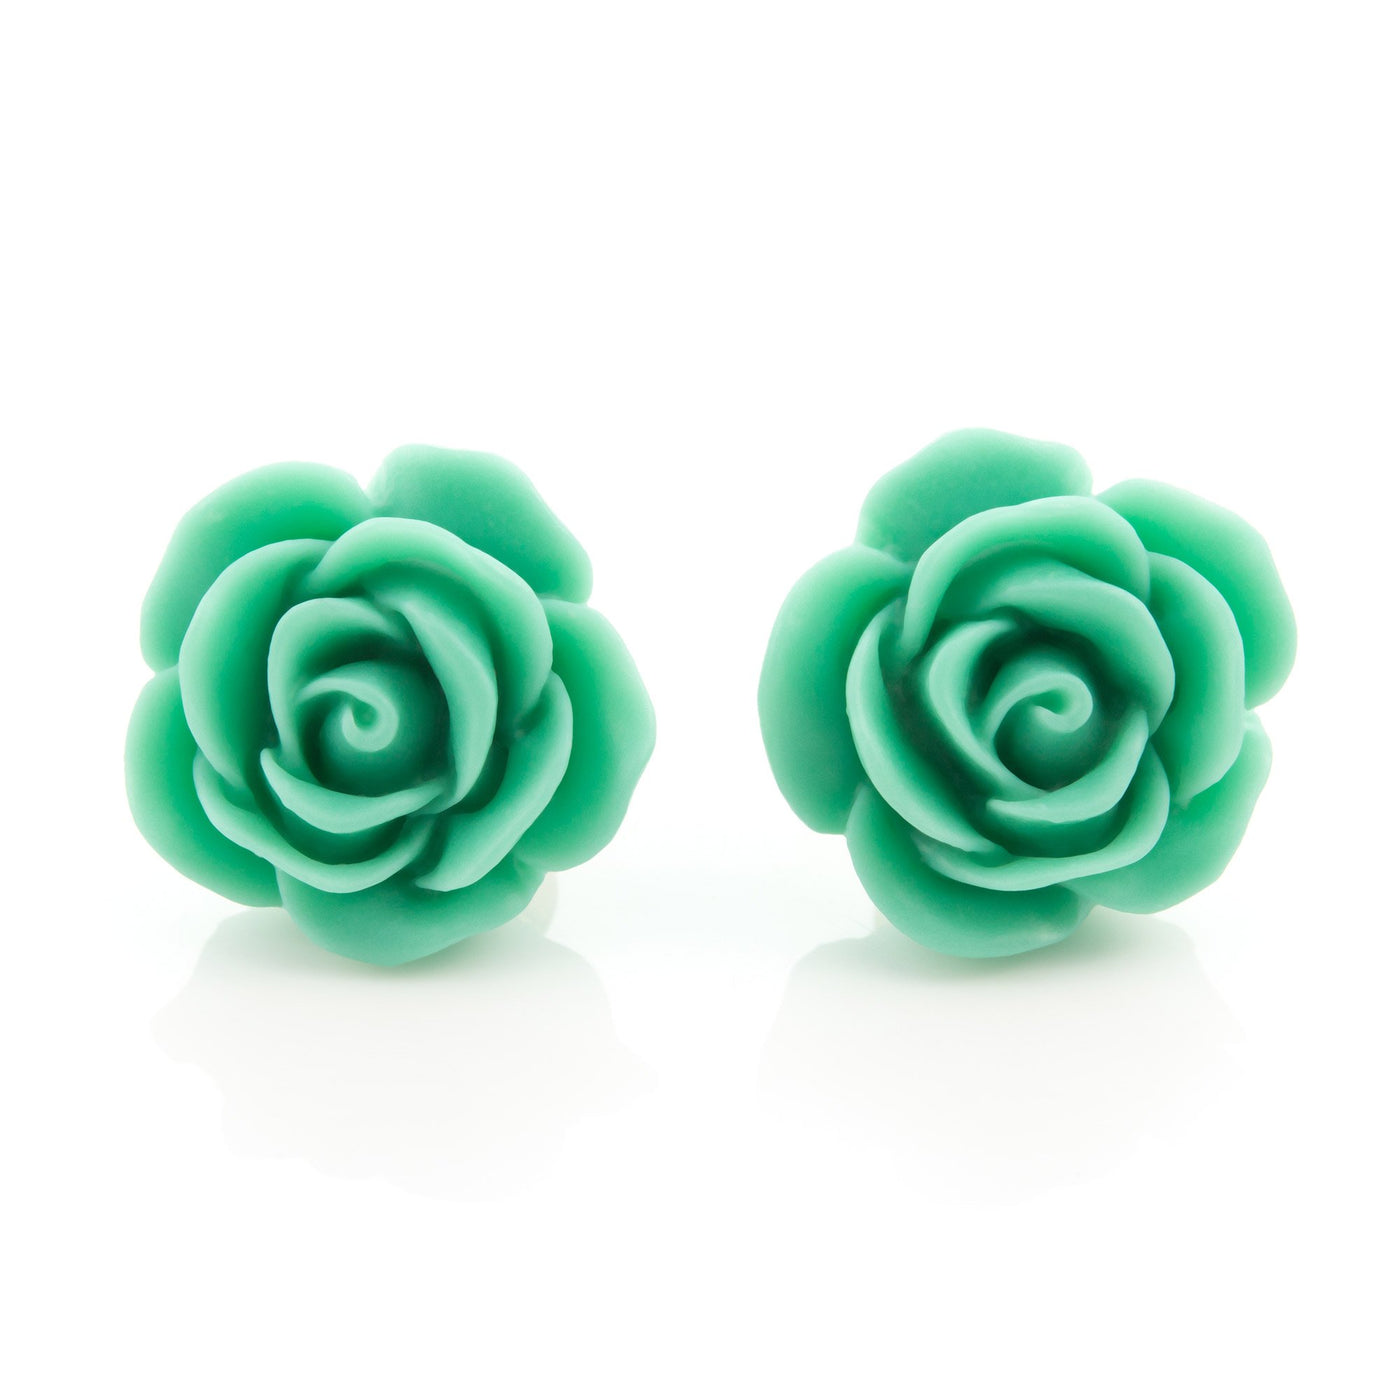 Mint Green Rose Earrings Dollydagger